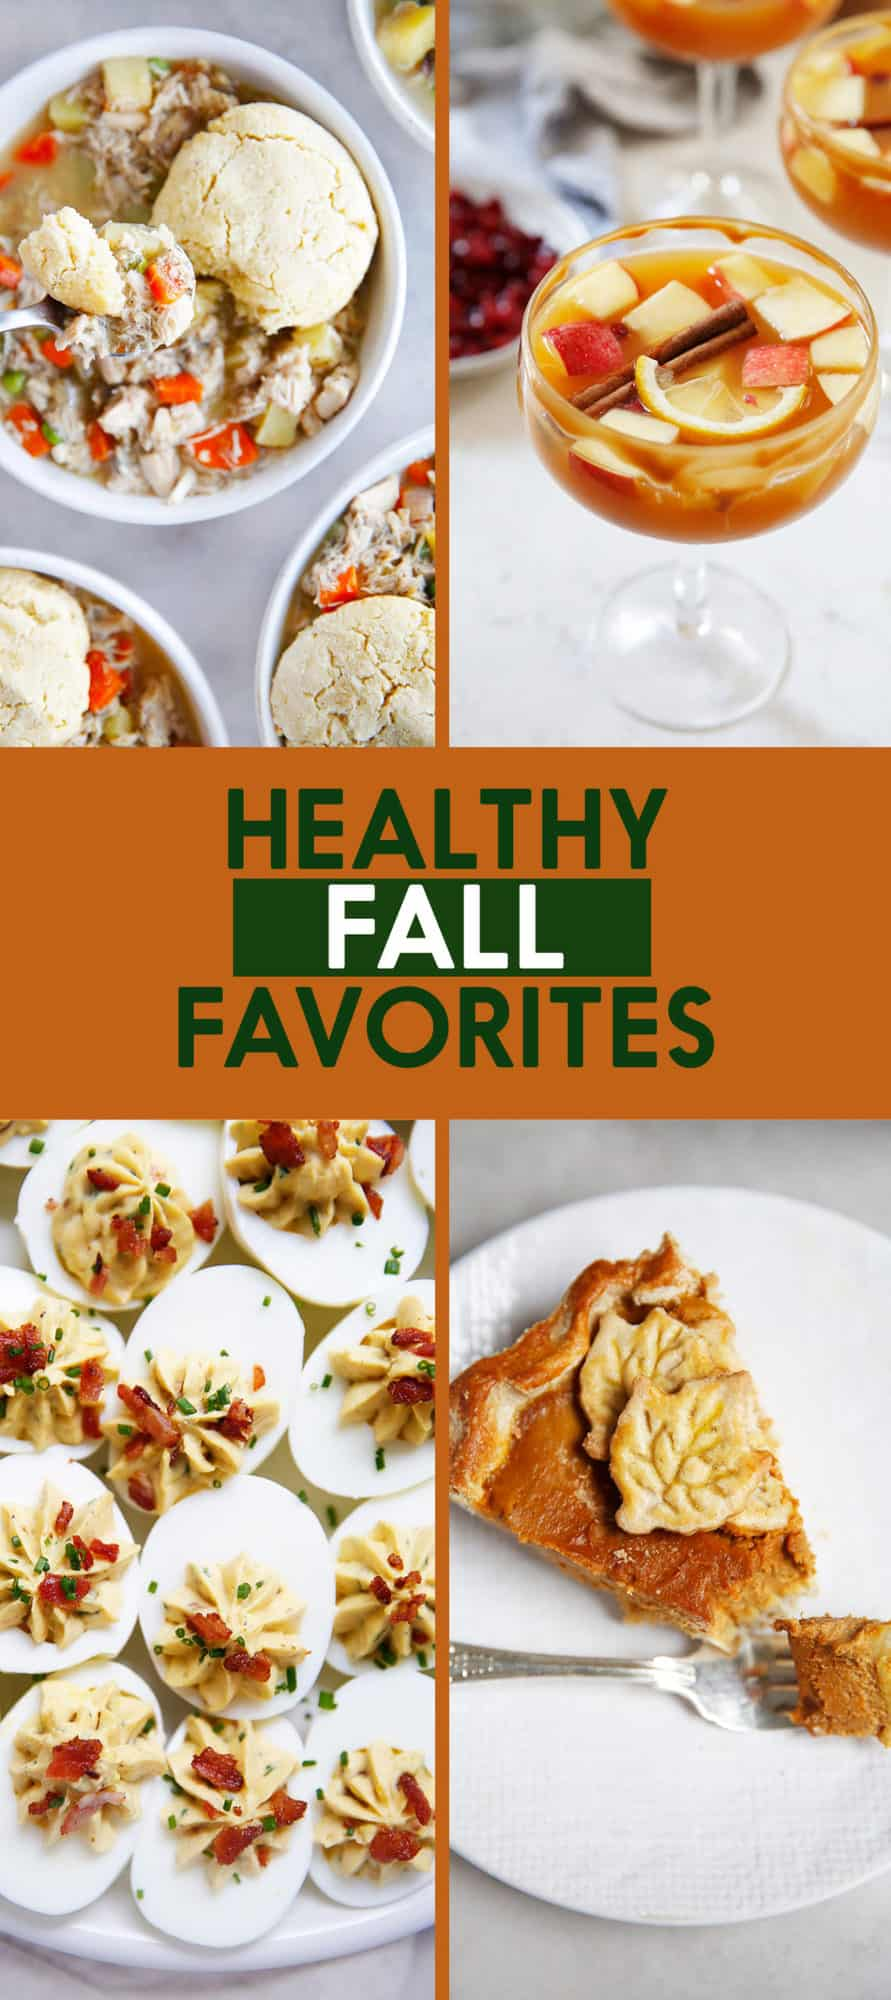 Our Favorite Healthy Fall Recipes